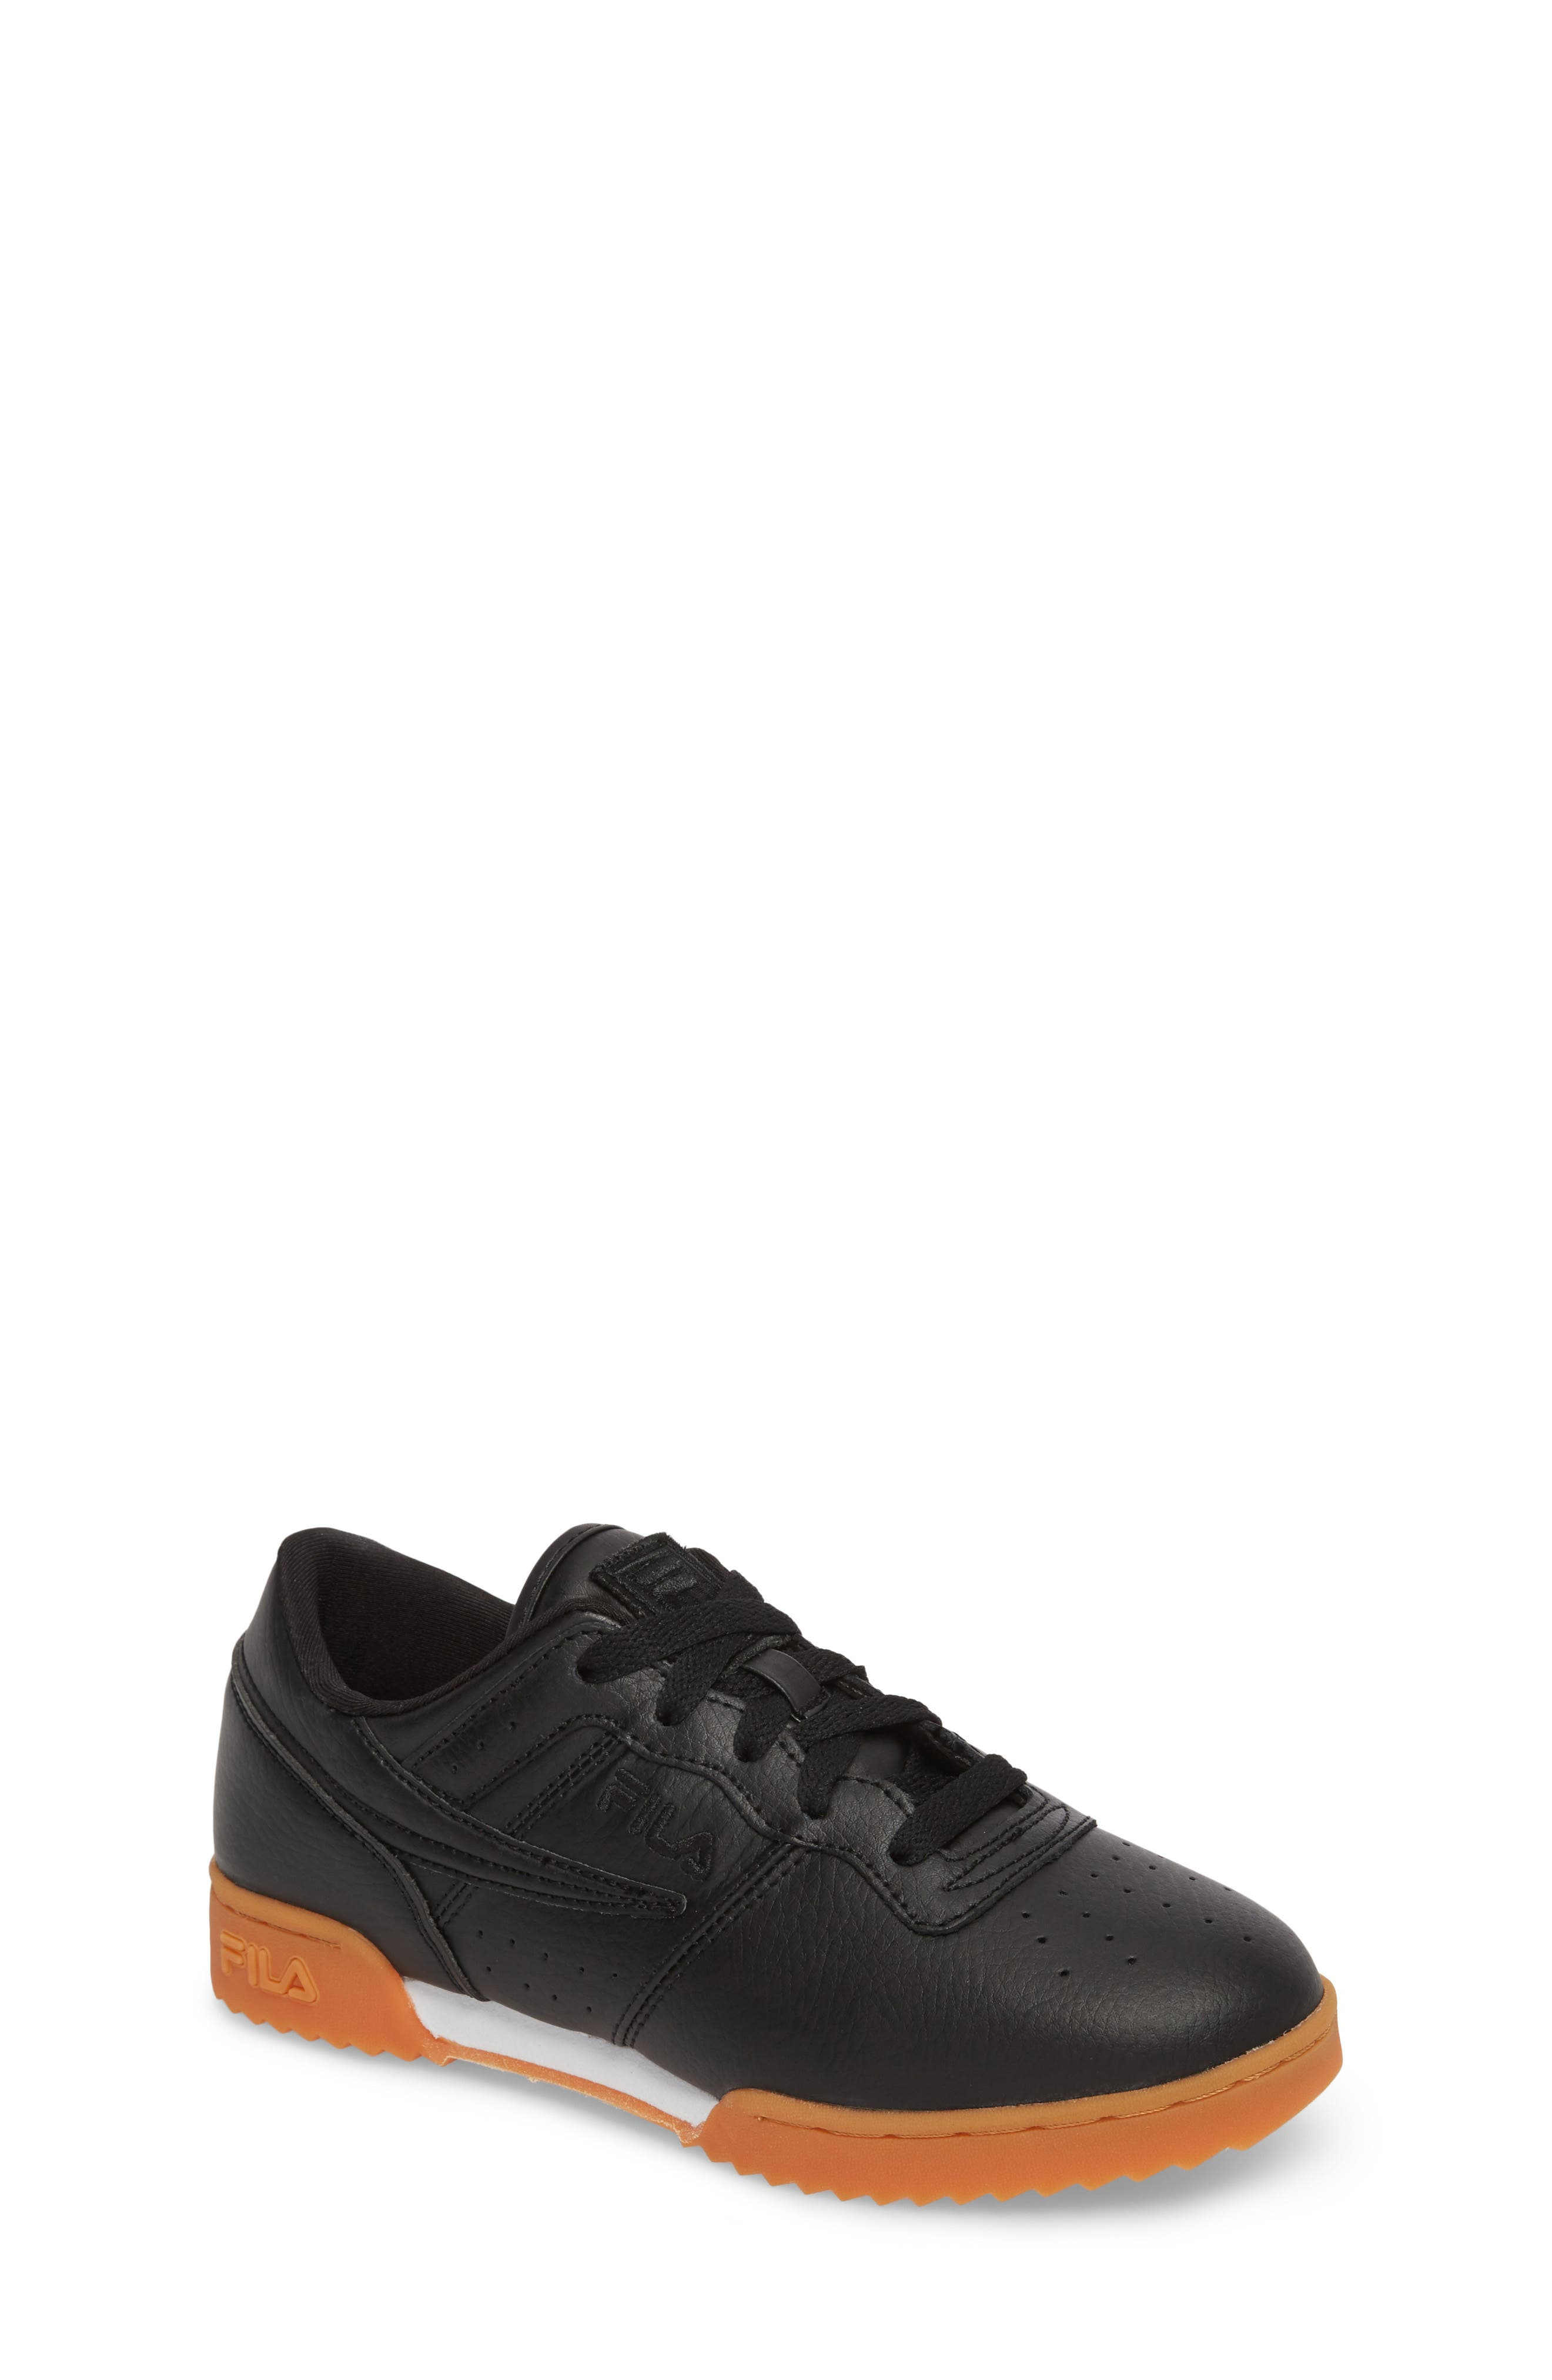 Original Fitness Sneaker,                             Main thumbnail 1, color,                             Black/ Gum